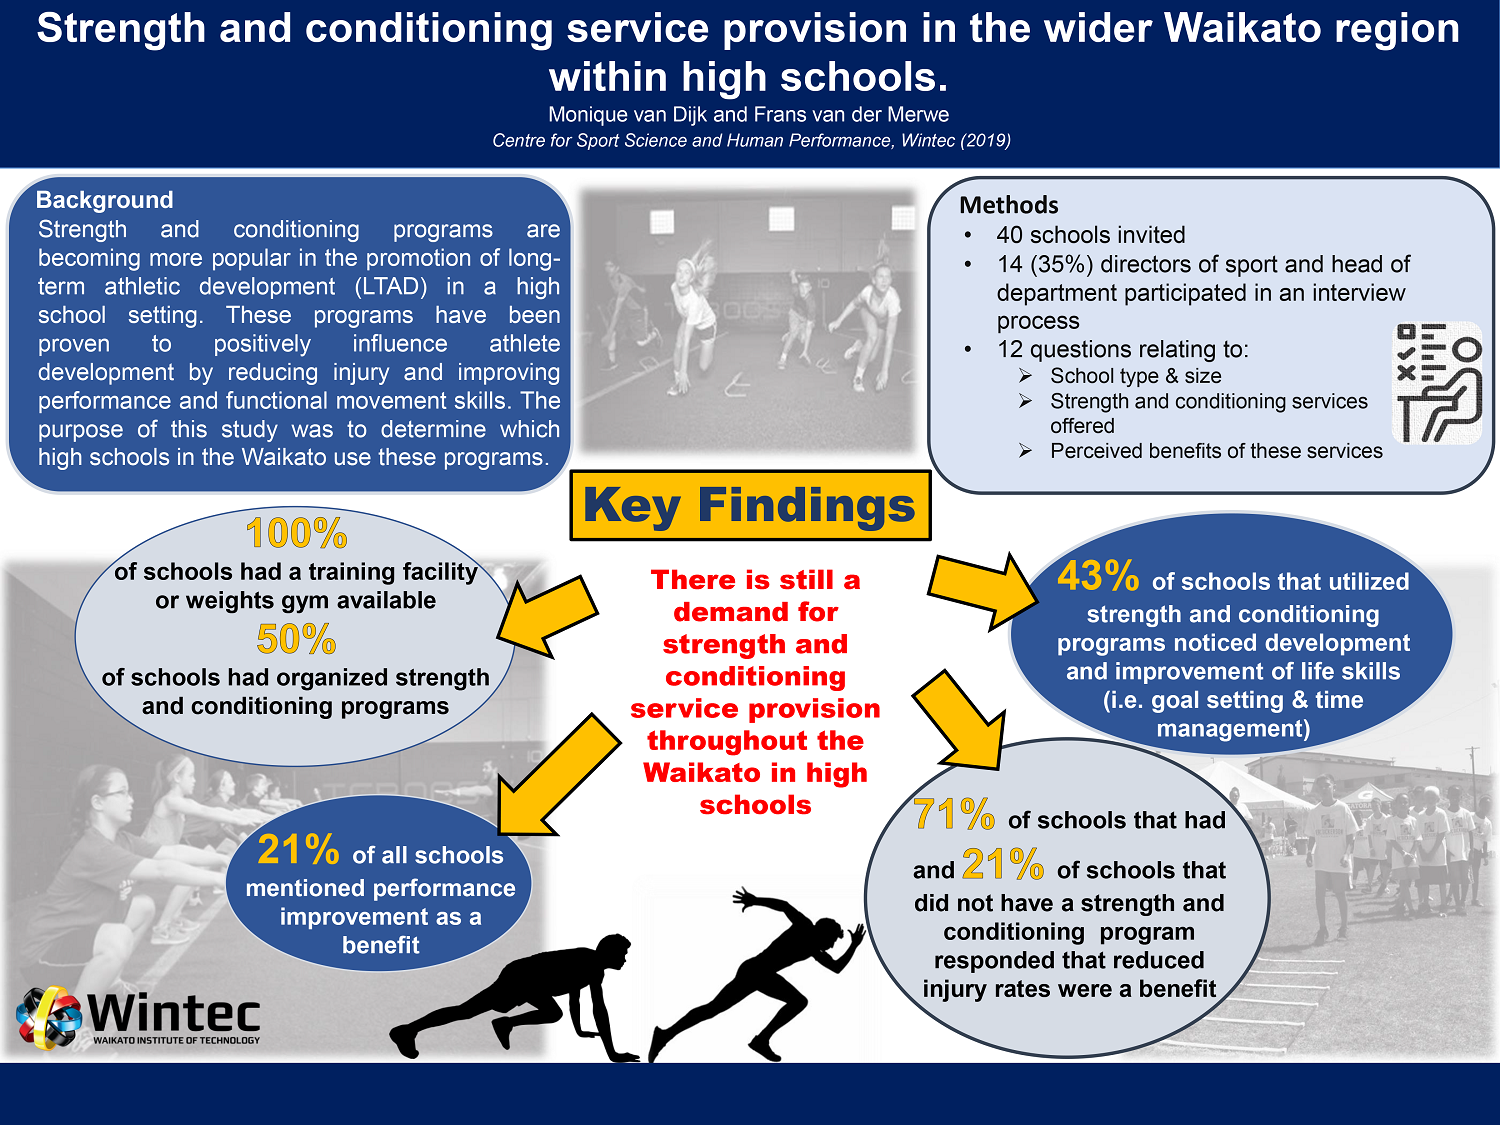 Strength and conditioning service provision in the wider Waikato region within high schools